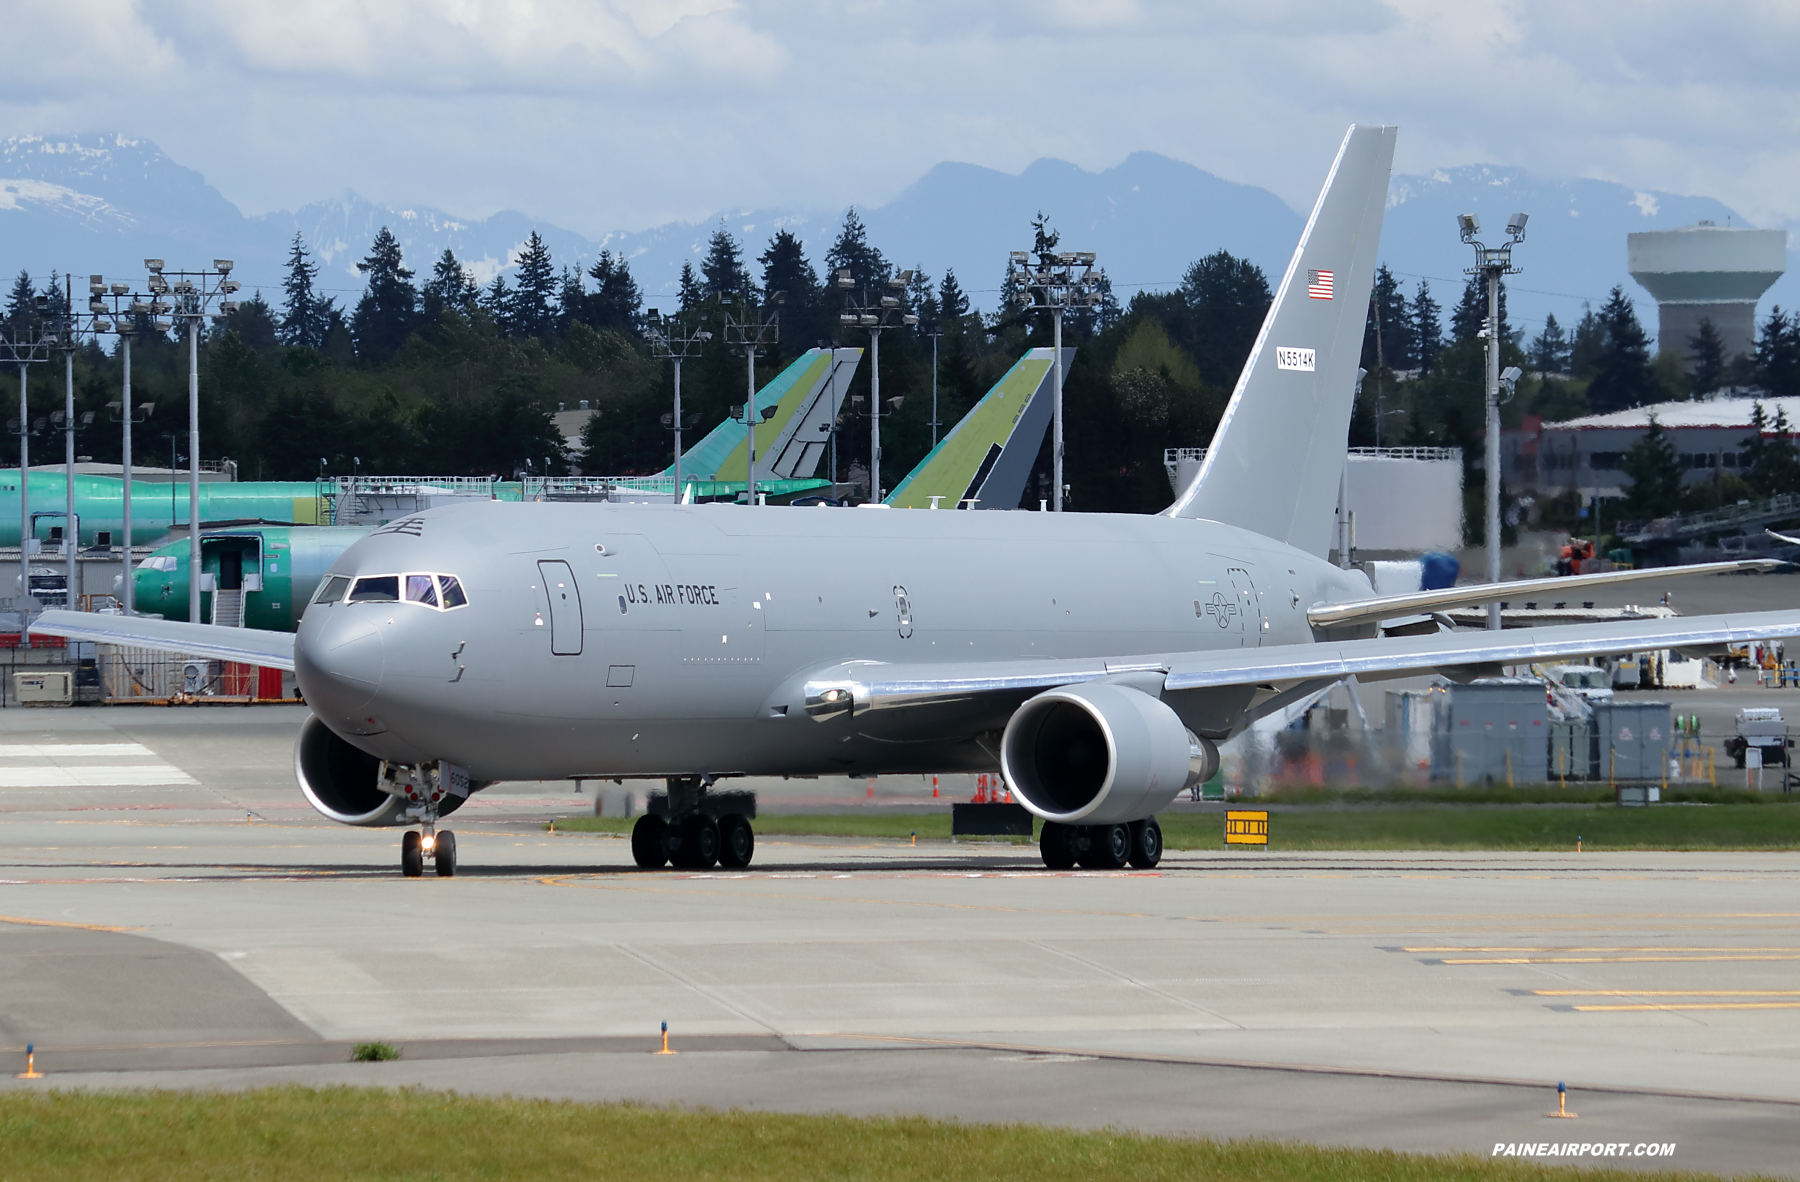 KC-46A 18-46052 at Paine Field